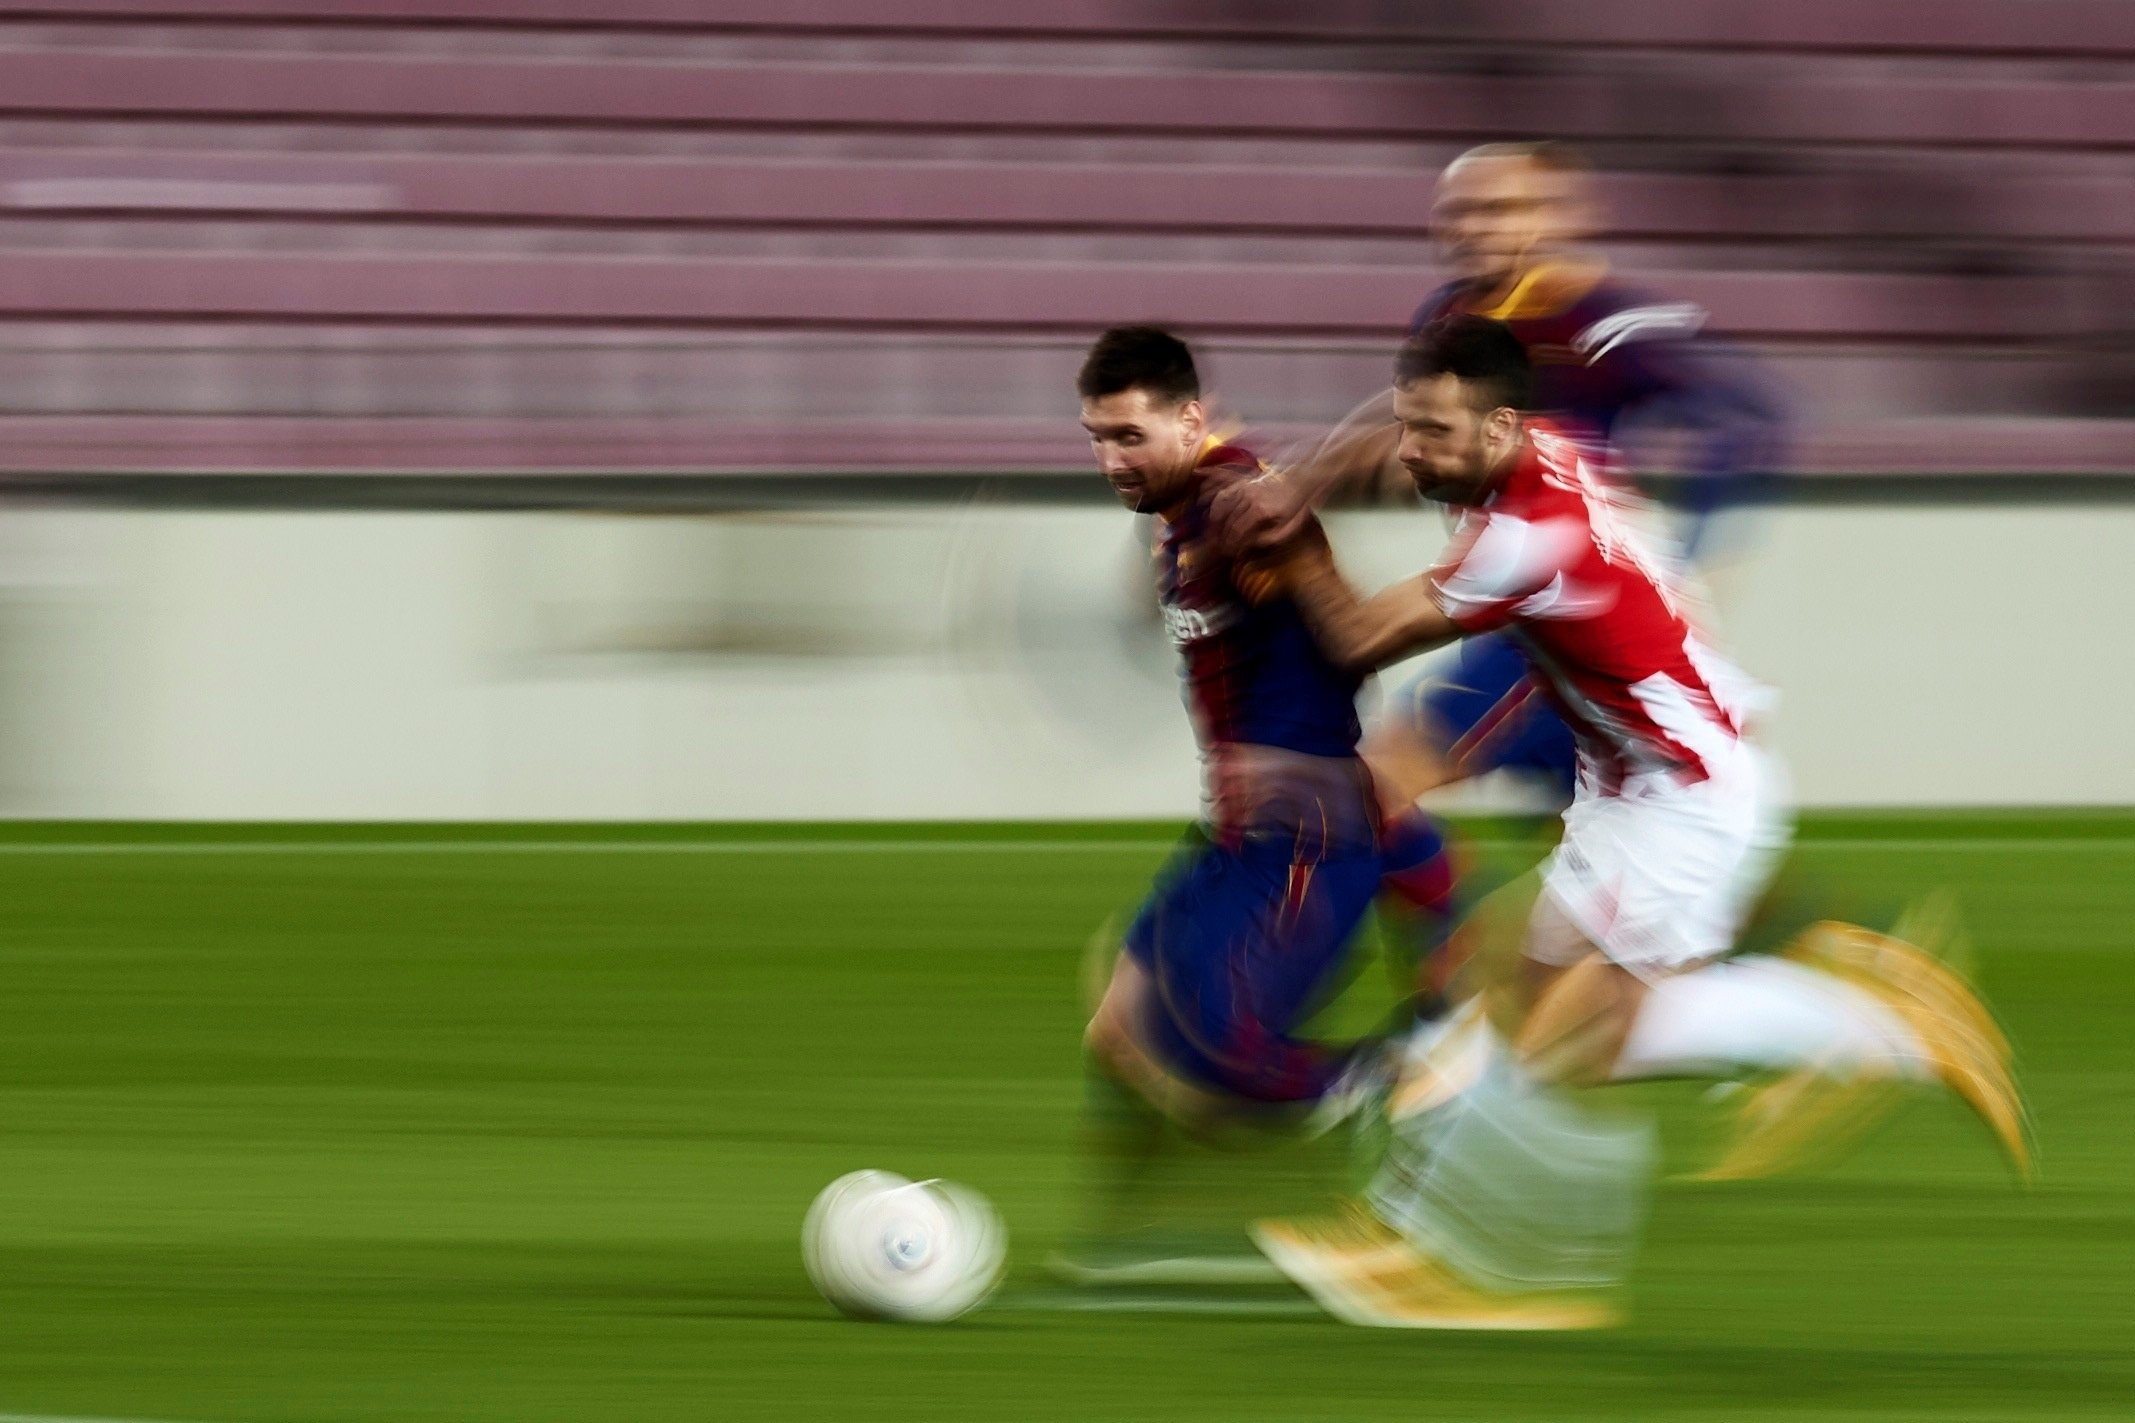 Barcelona forward Lionel Messi in action during a La Liga match against Athletic Club Bilbao at the Camp Nou, Barcelona, Jan. 31, 2021. (AFP Photo)